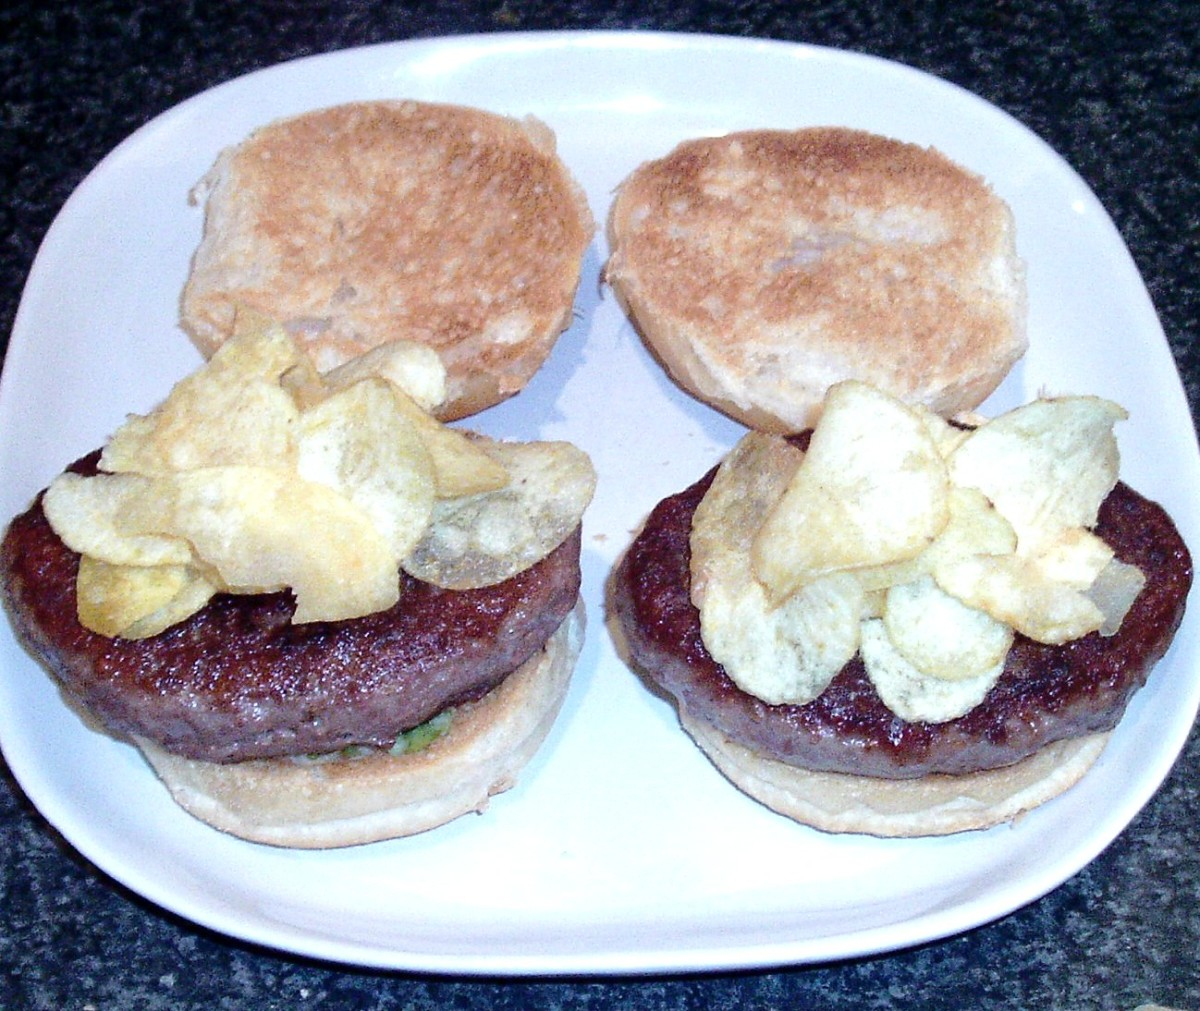 Crisps are arranged on top of venison grillsteaks